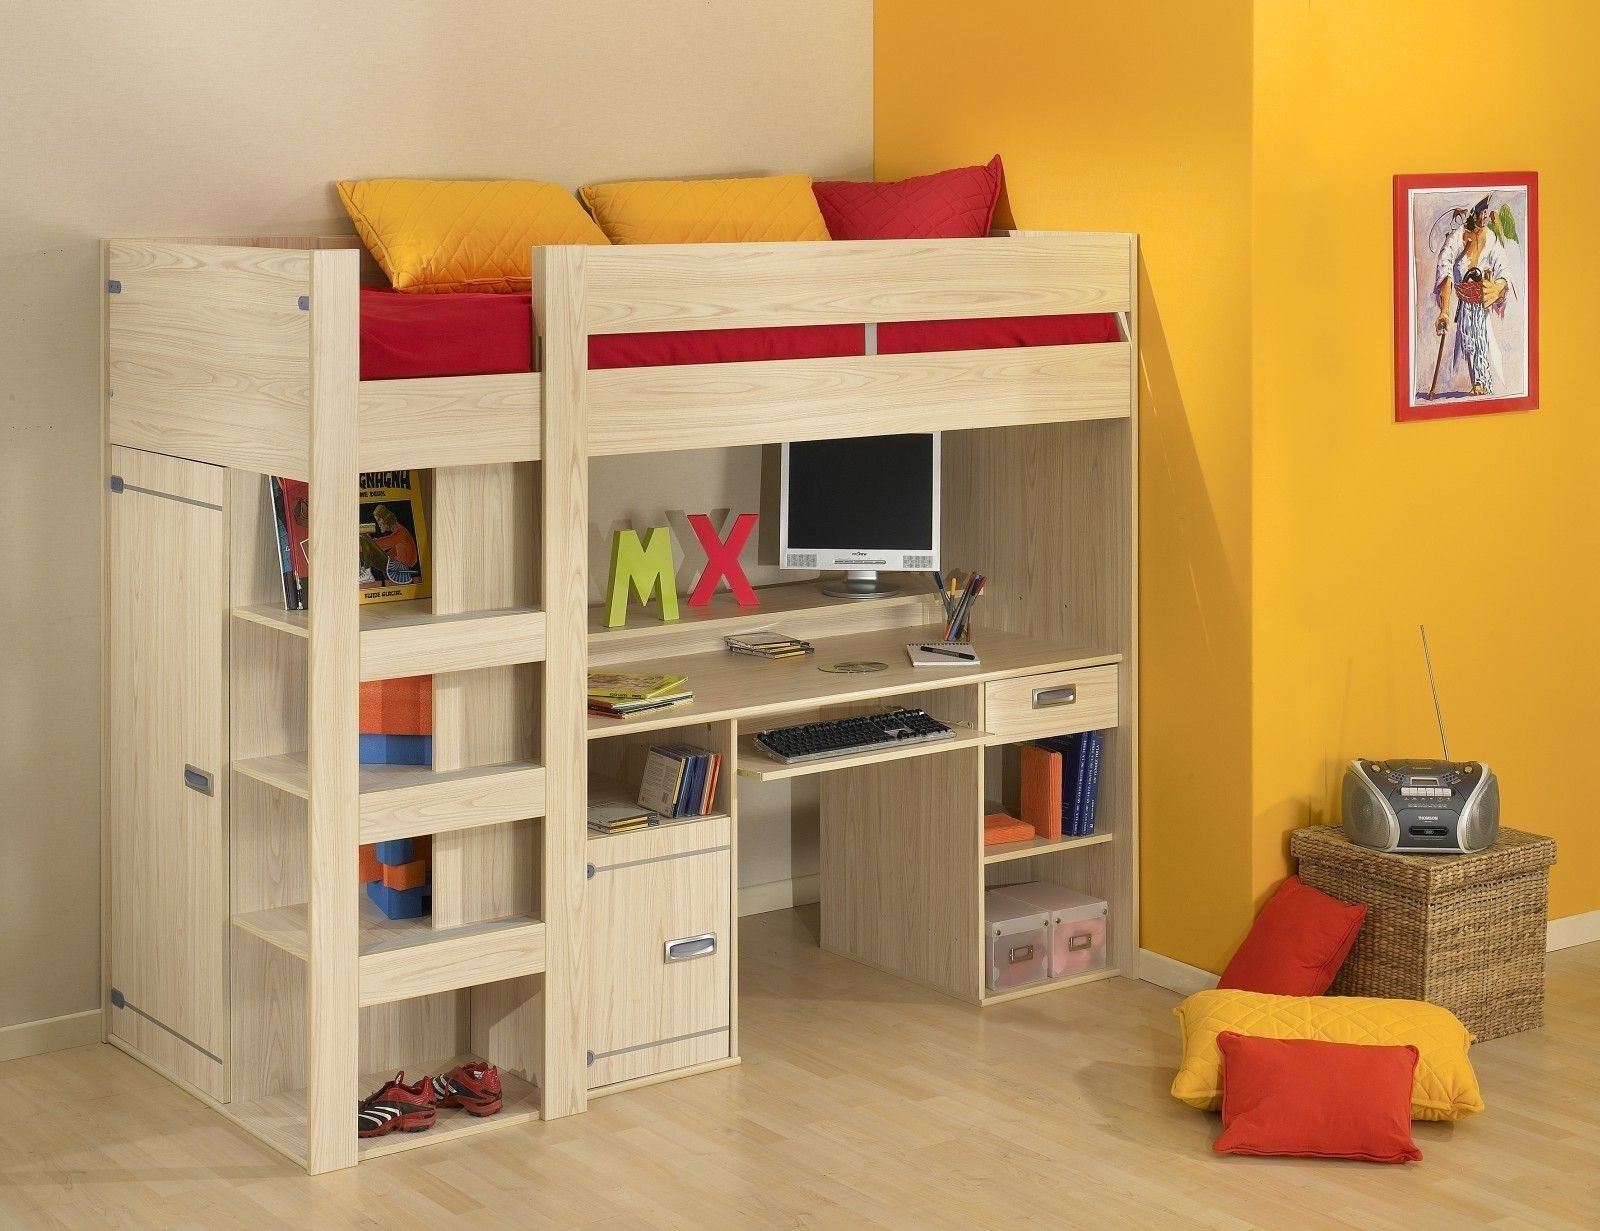 Loft bed ideas for small spaces   Super Functional Bunk Beds With Desk For Small Spaces  Pinterest